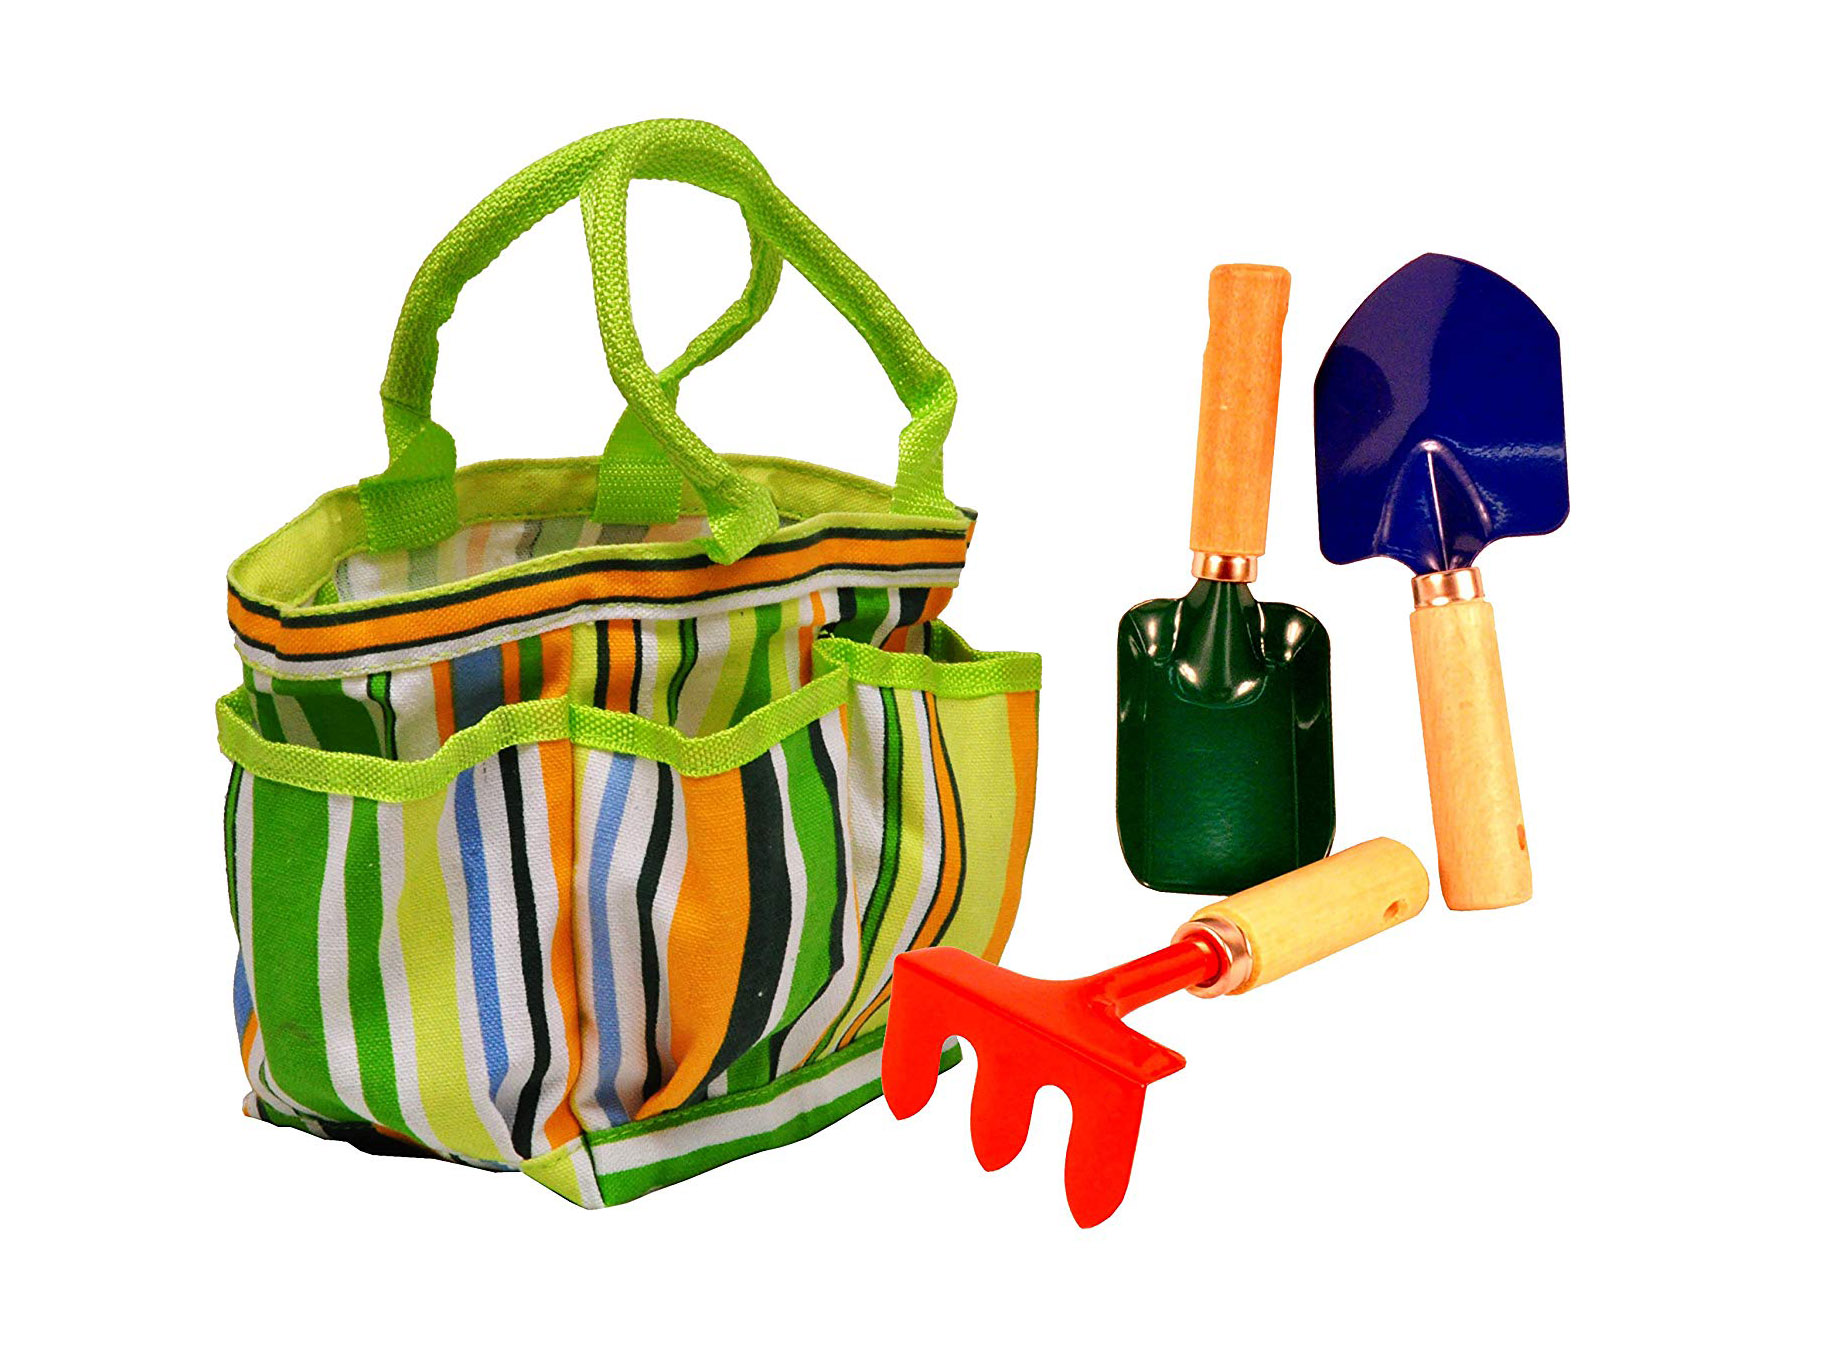 Kids Garden Tools Set with Tote